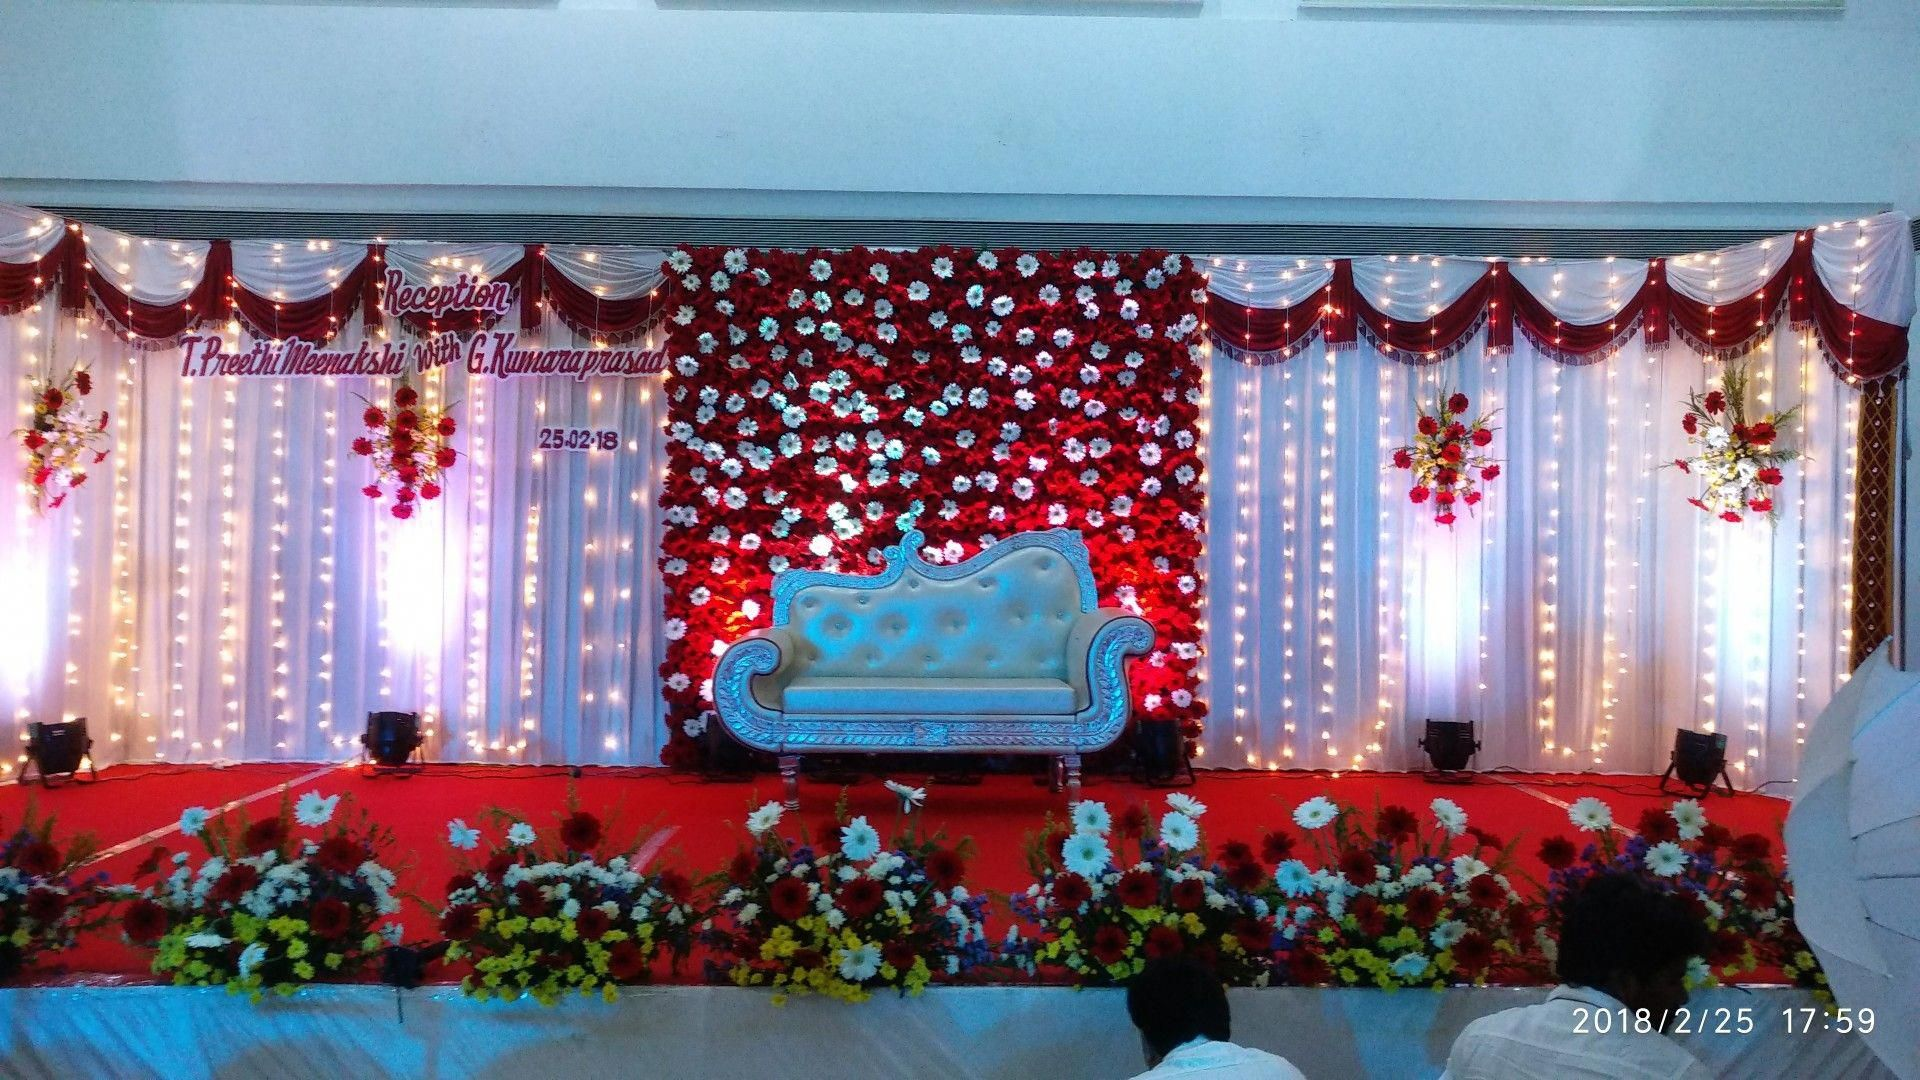 www avsamevents in, +919566445453, Wedding and Reception